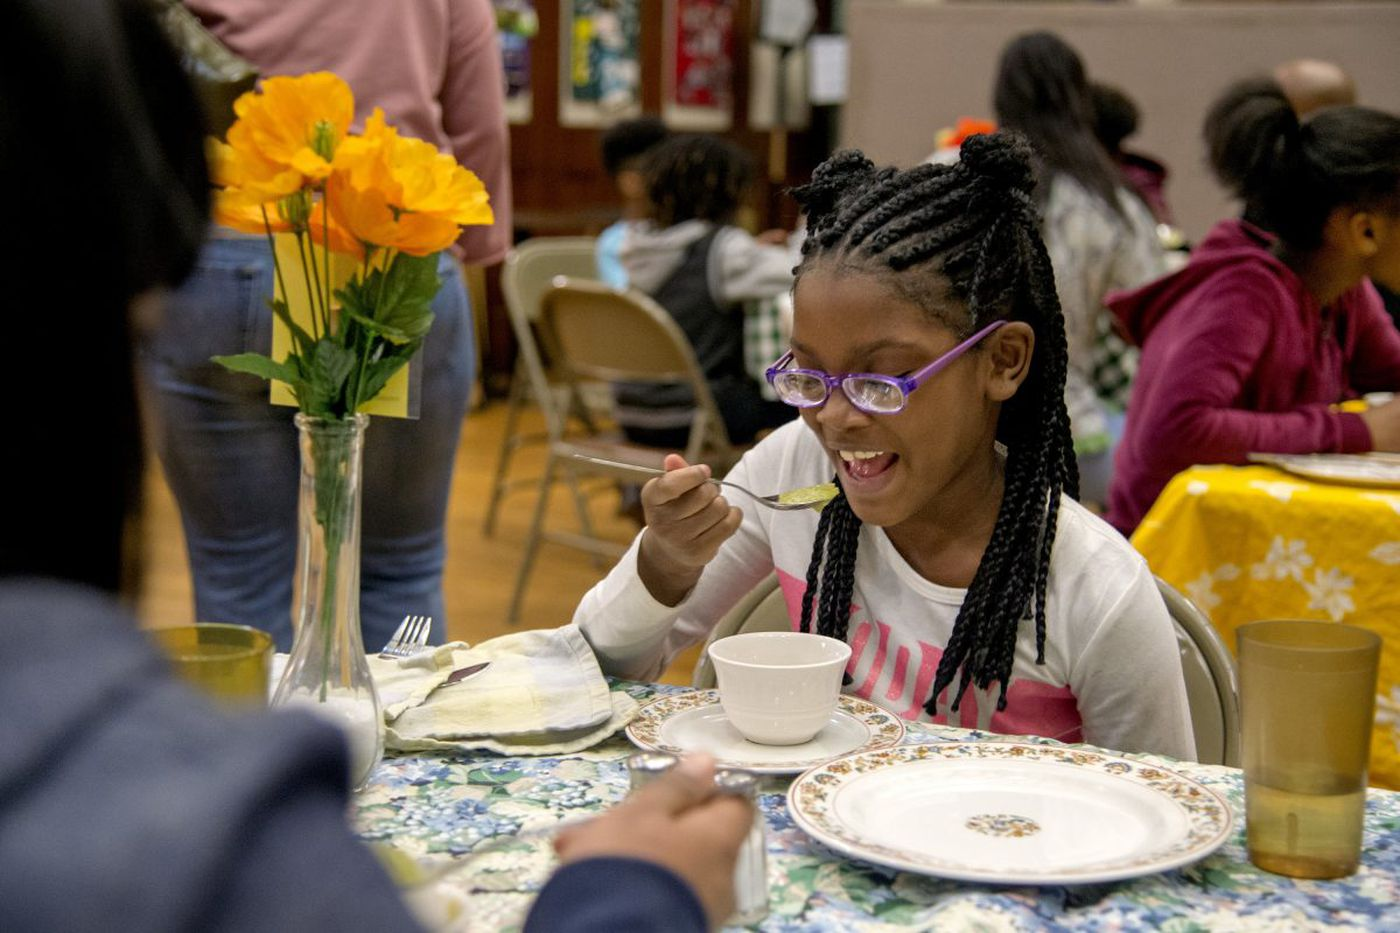 Removing barriers to healthy eating, one family meal at a time